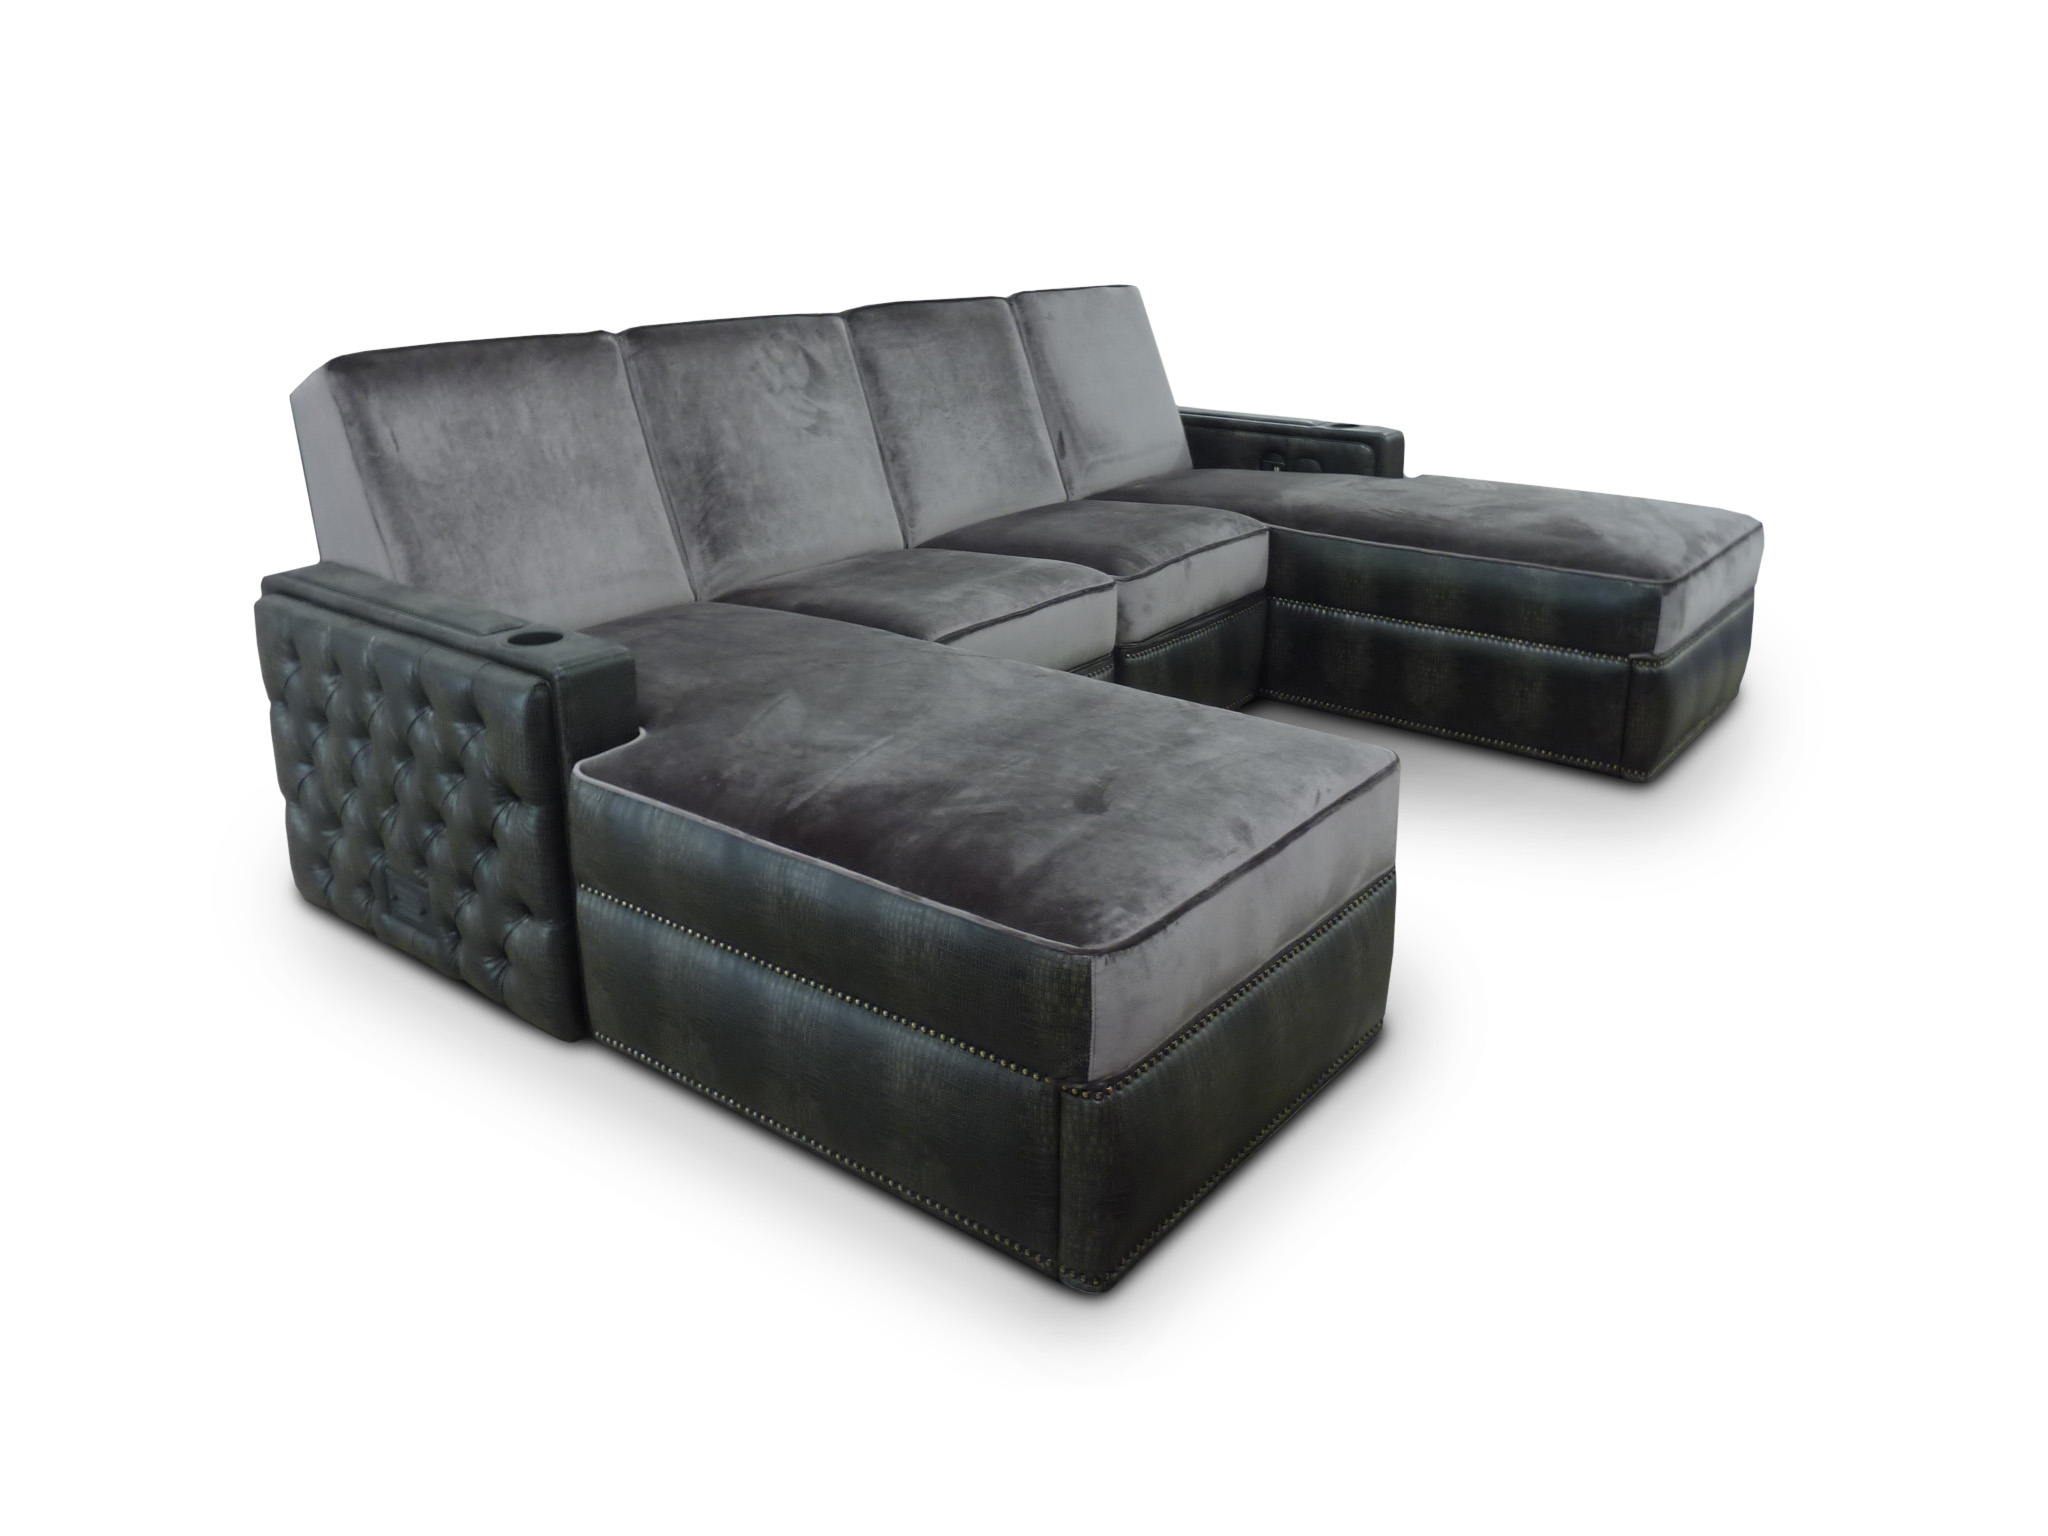 Lounger with tufting on side panels, back and ottoman.  Ottoman is on casters